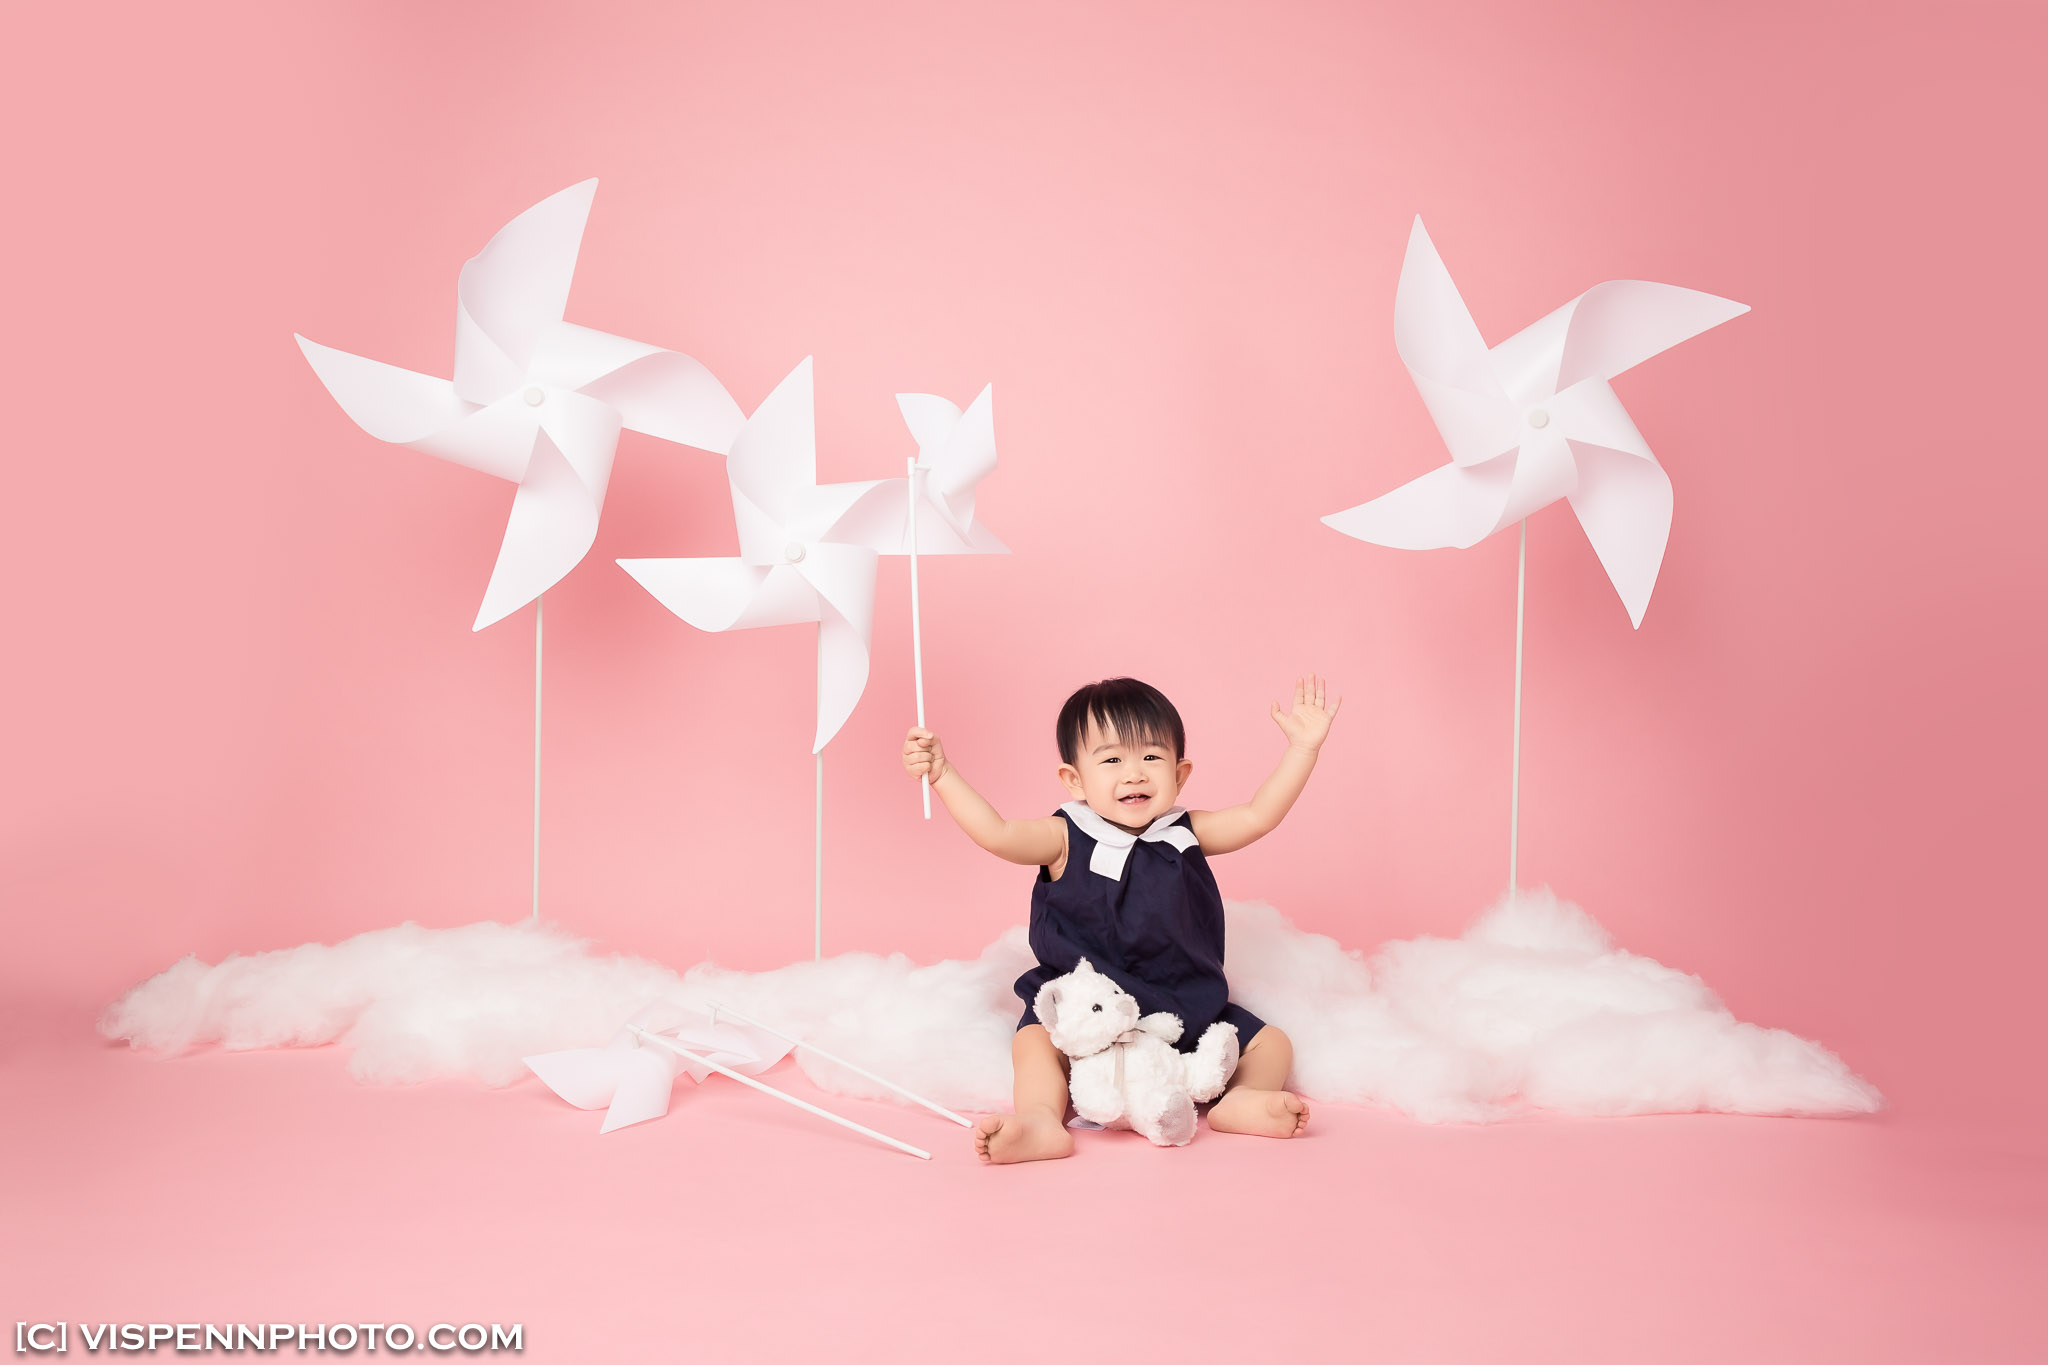 Melbourne Newborn Baby Family Photo BaoBao VISPENN 墨尔本 儿童 宝宝 百天照 满月照 孕妇照 全家福 KIDS TerenceCHEN 2661 VISPENN